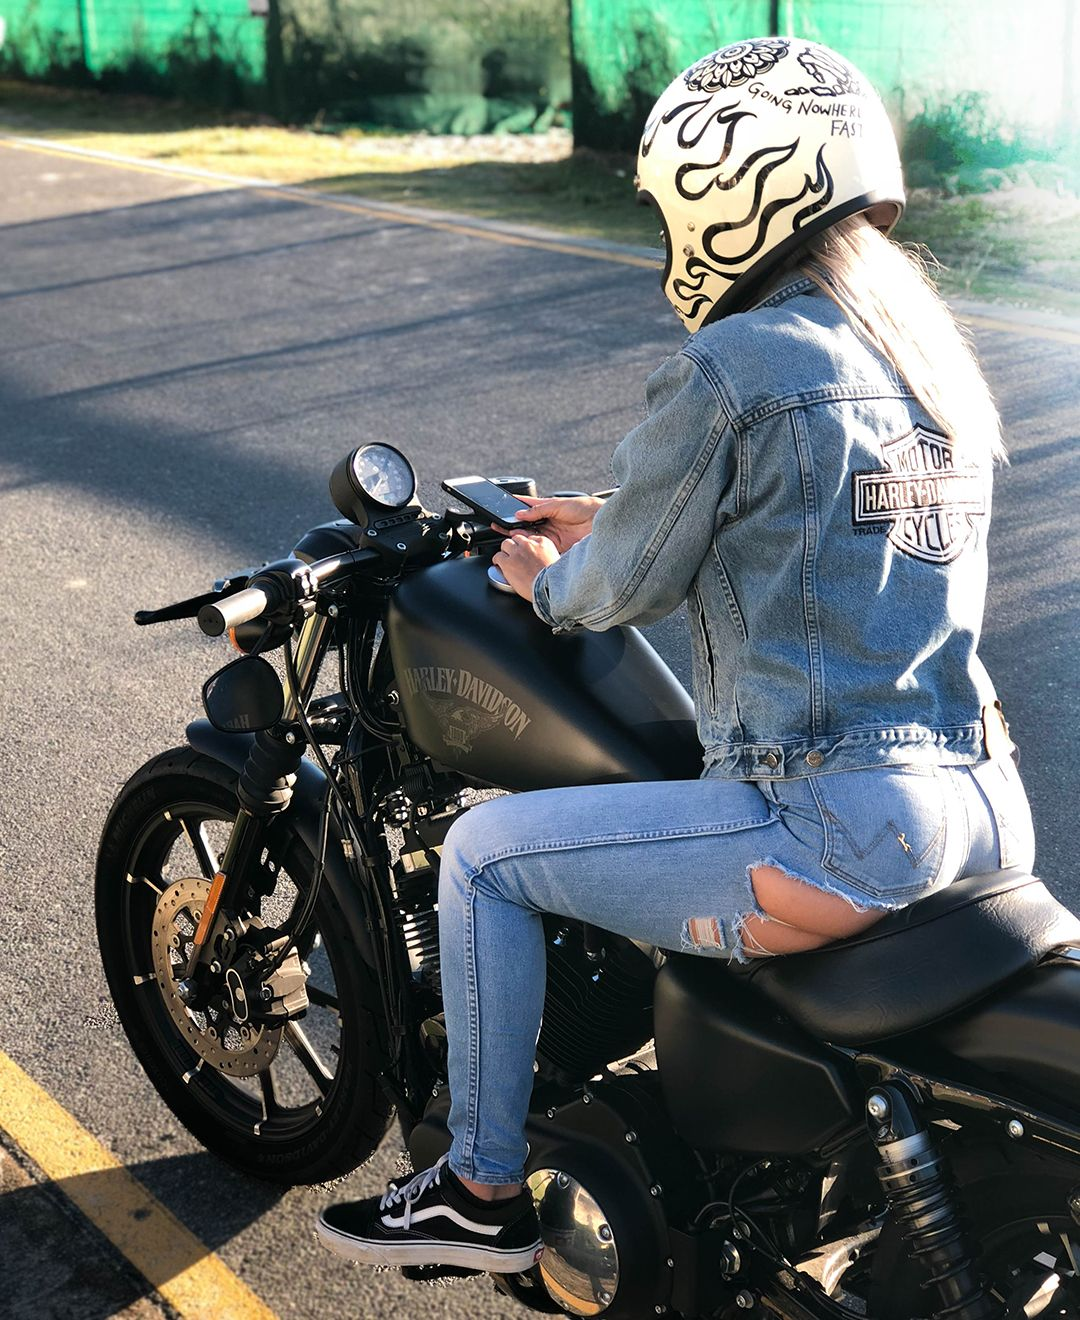 Moto Mount Kit All Iphone Devices Motorcycle Girl Biker Girl